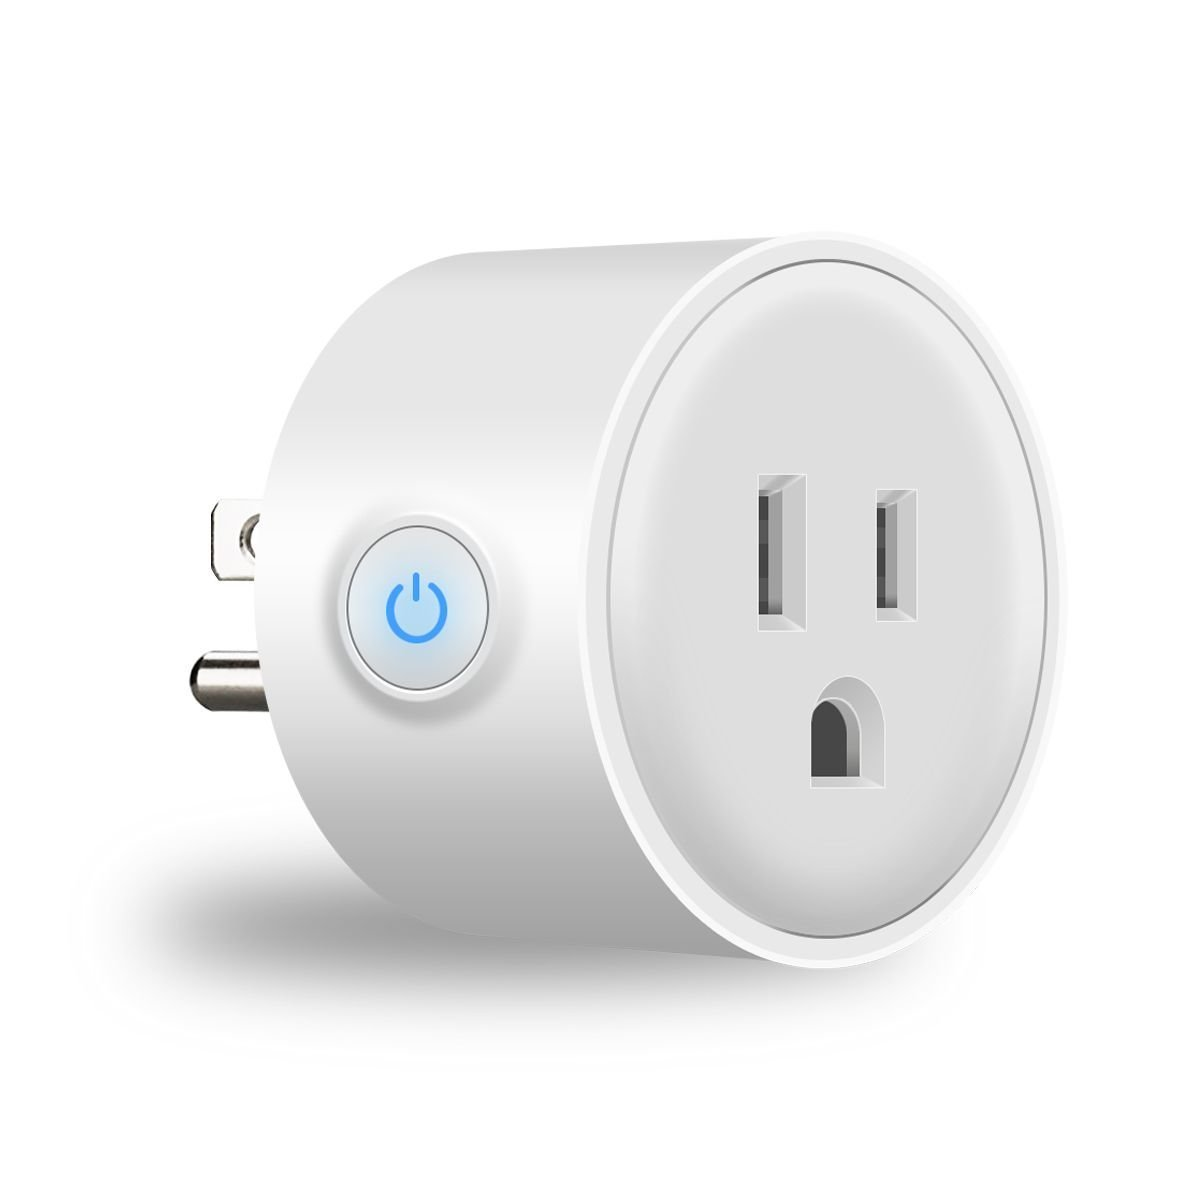 WiFi Smart Plug 2 Packs Mini Smart Outlet with Timing Function,Work with Amazon Alexa&Google Assistant IFTTT,No Hub Required,Remote Control your Appliances from Anywhere Anytime